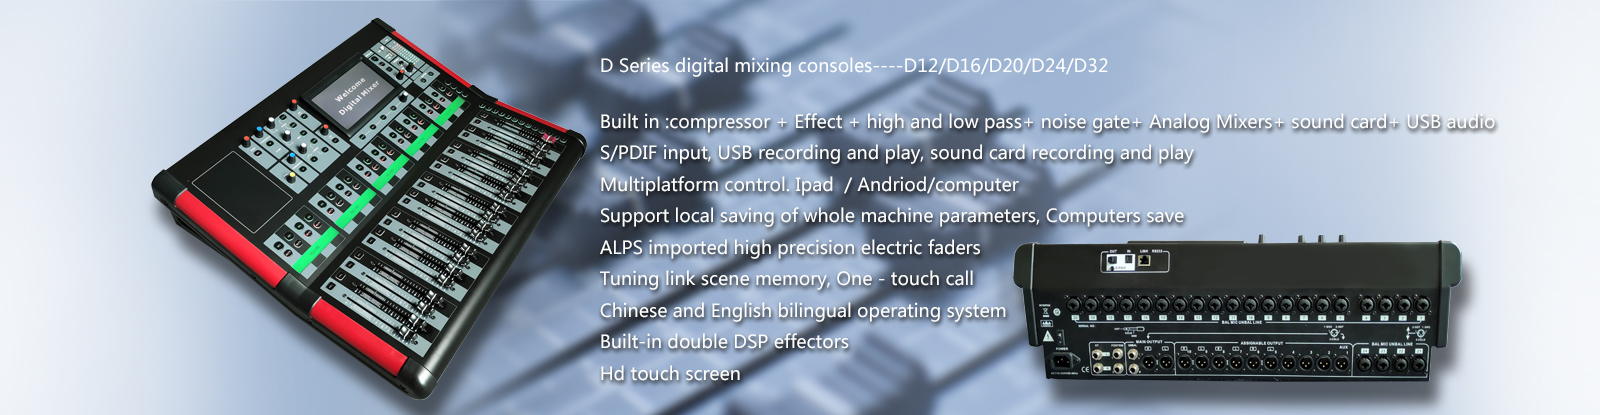 D Series digital mixing consoles